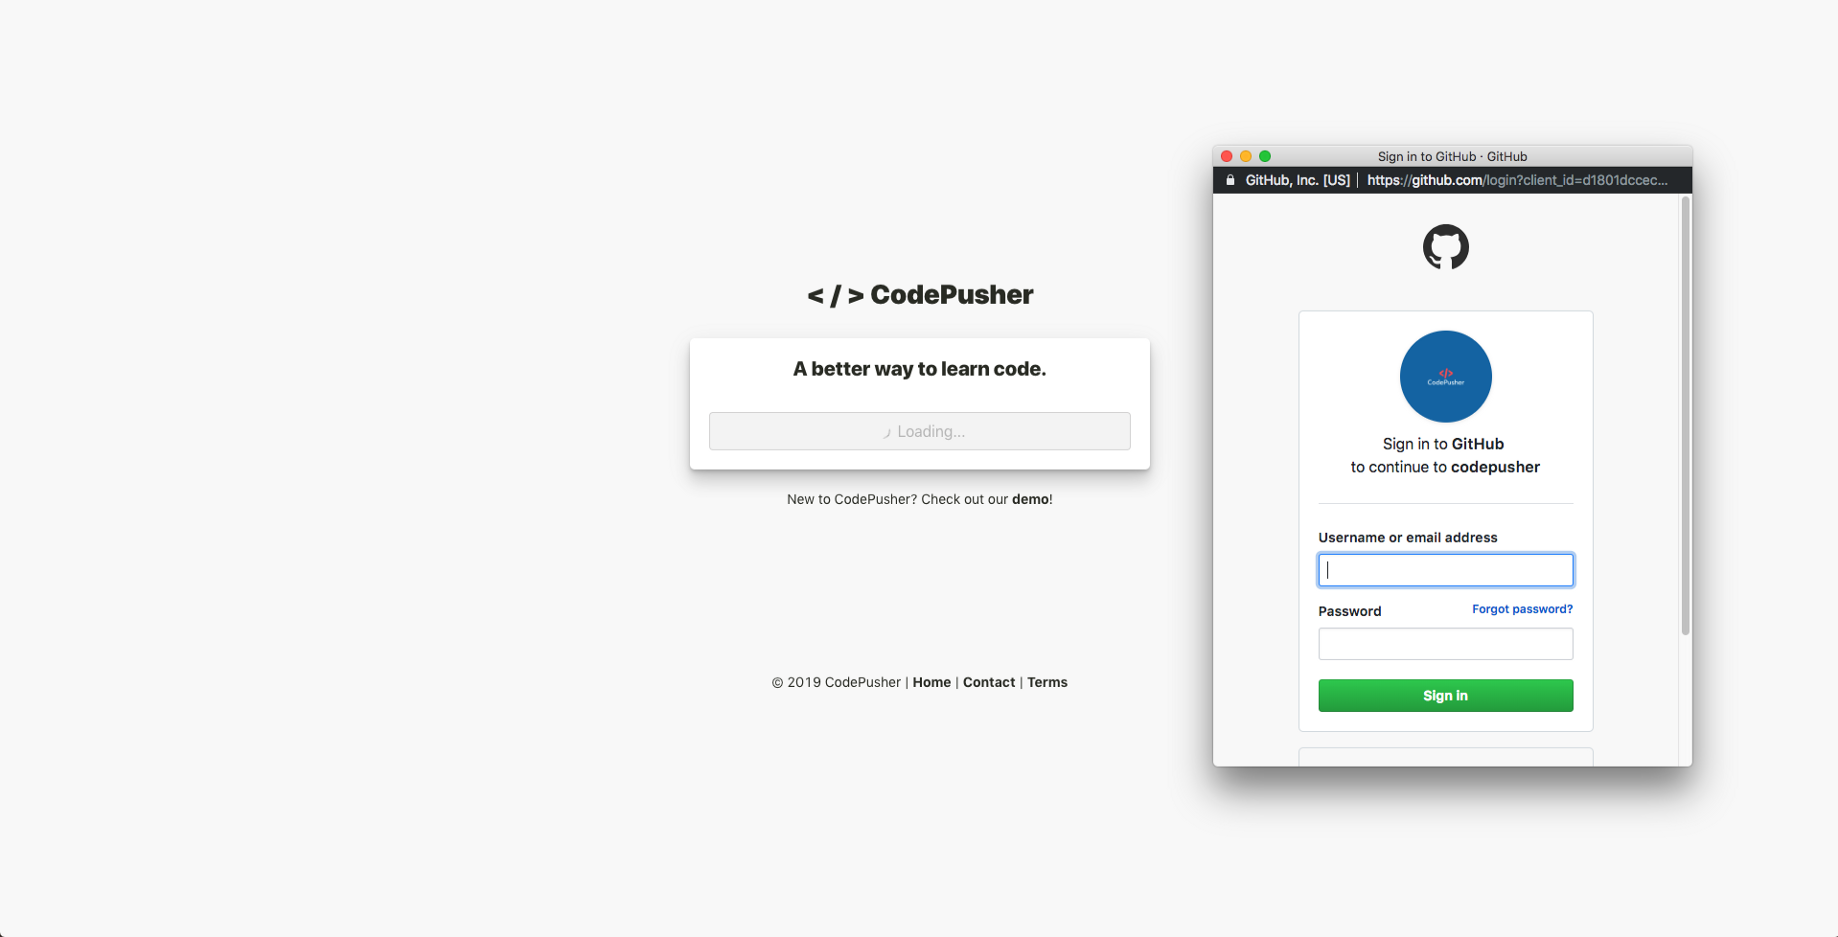 Adding a user authentication flow into a react frontend with firebase